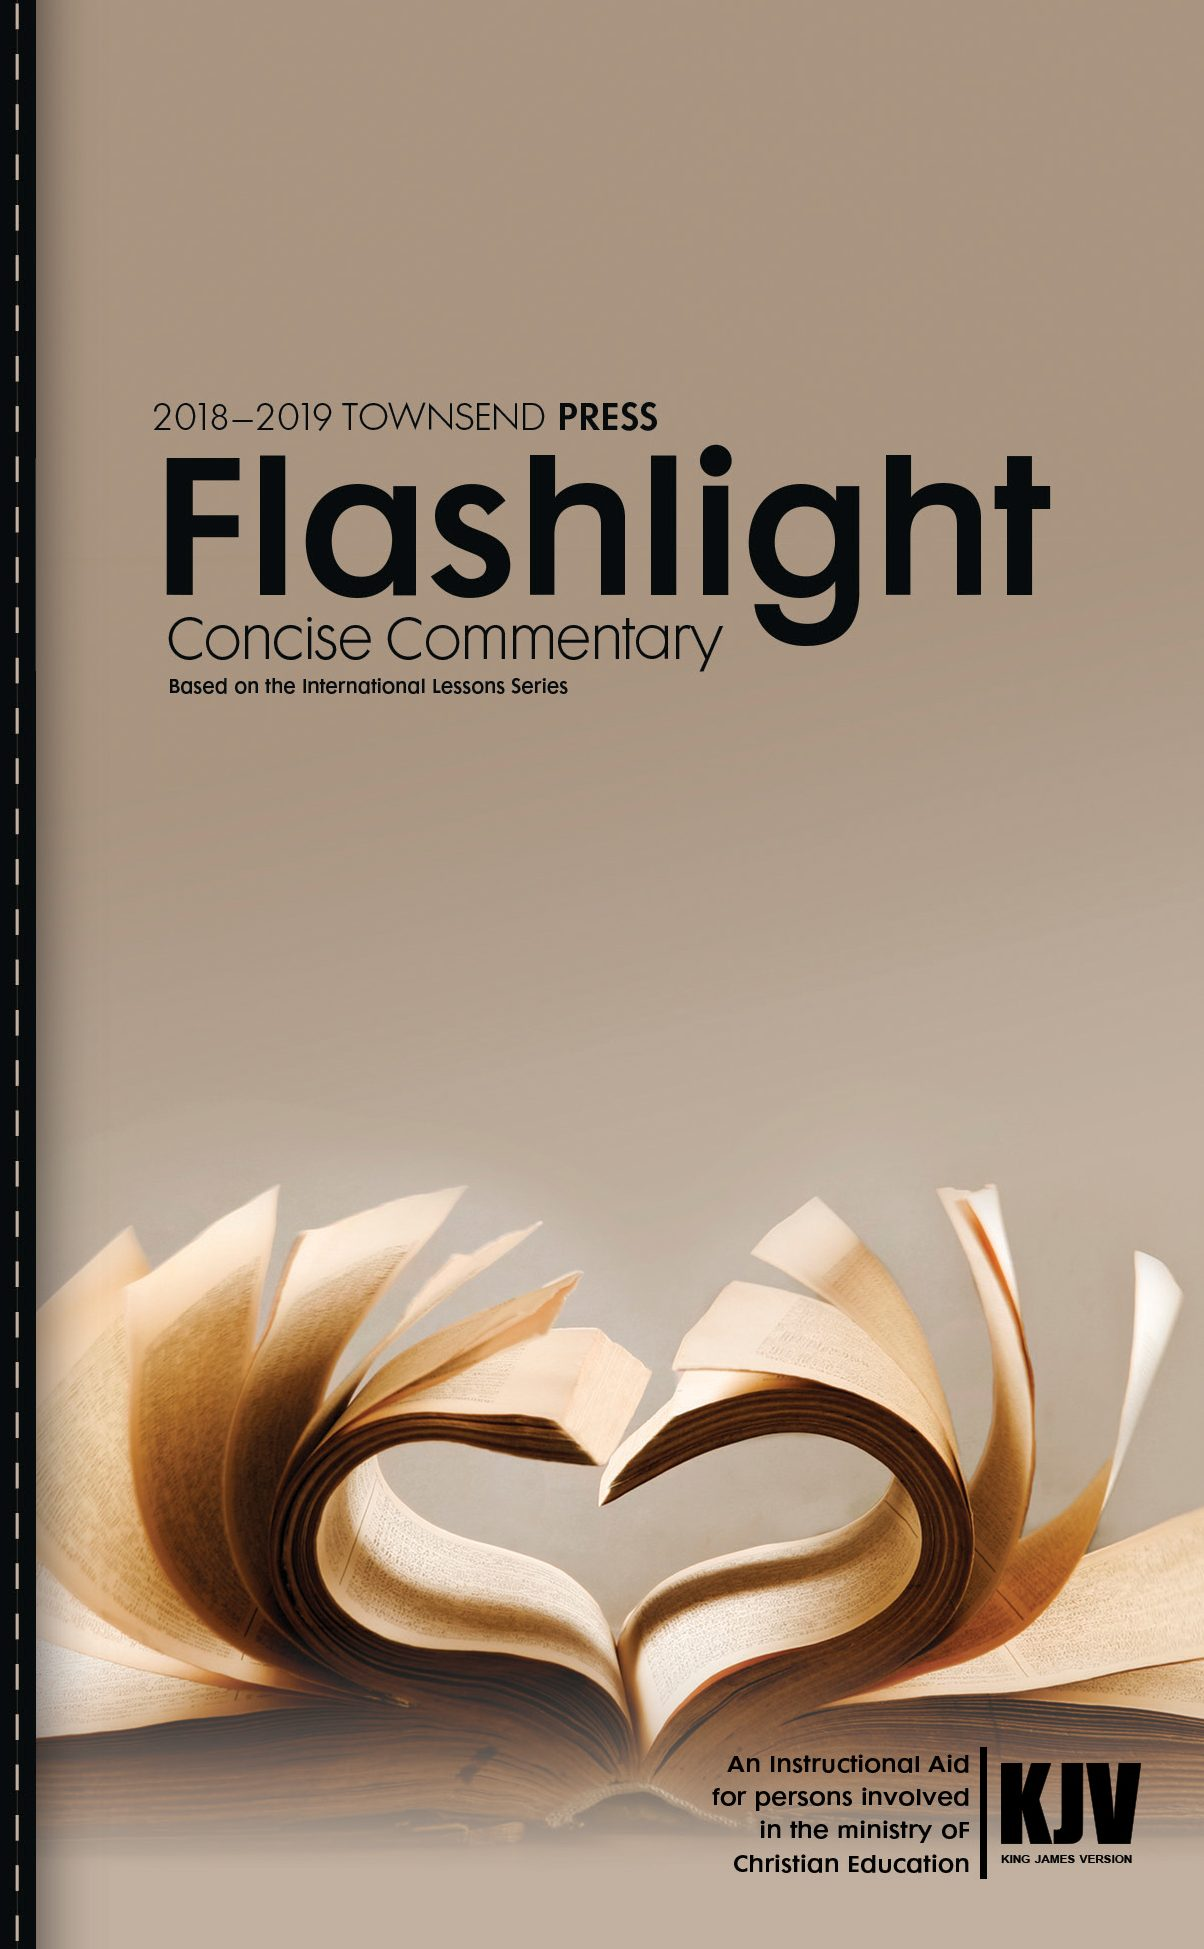 2018-2019 Townsend Press Sunday School Flashlight Concise Commentary